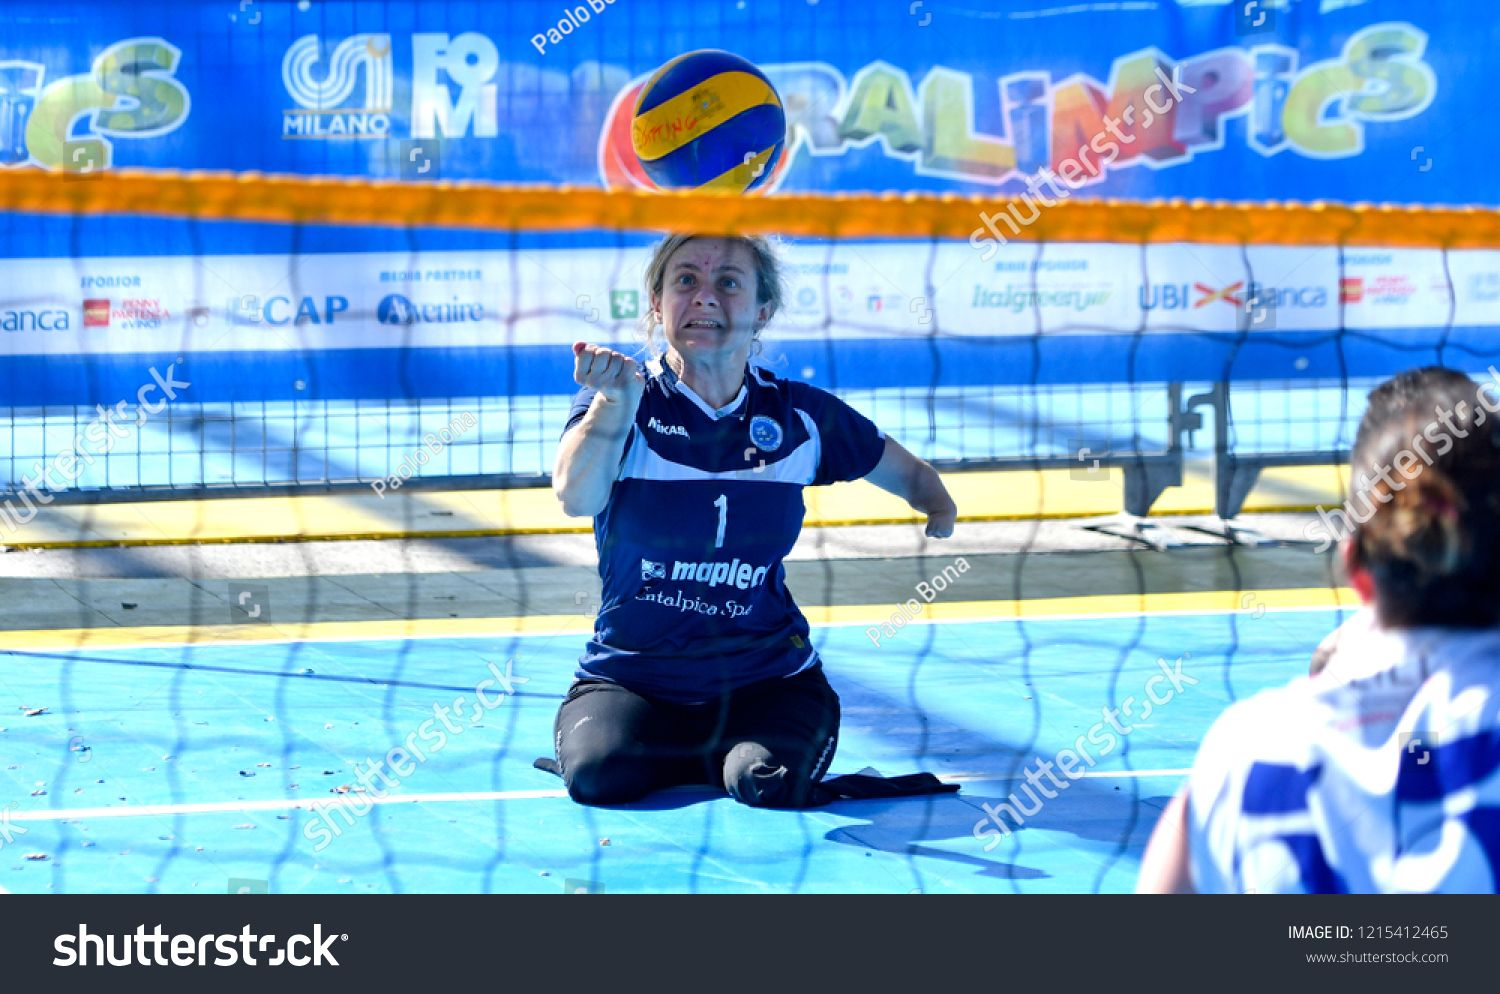 Milan Italy June 30 2018 Amputee Woman Volleyball Player During A Sports Summer Camp In Milan Ad Ad Sports Summer Camp Women Volleyball Milan Italy